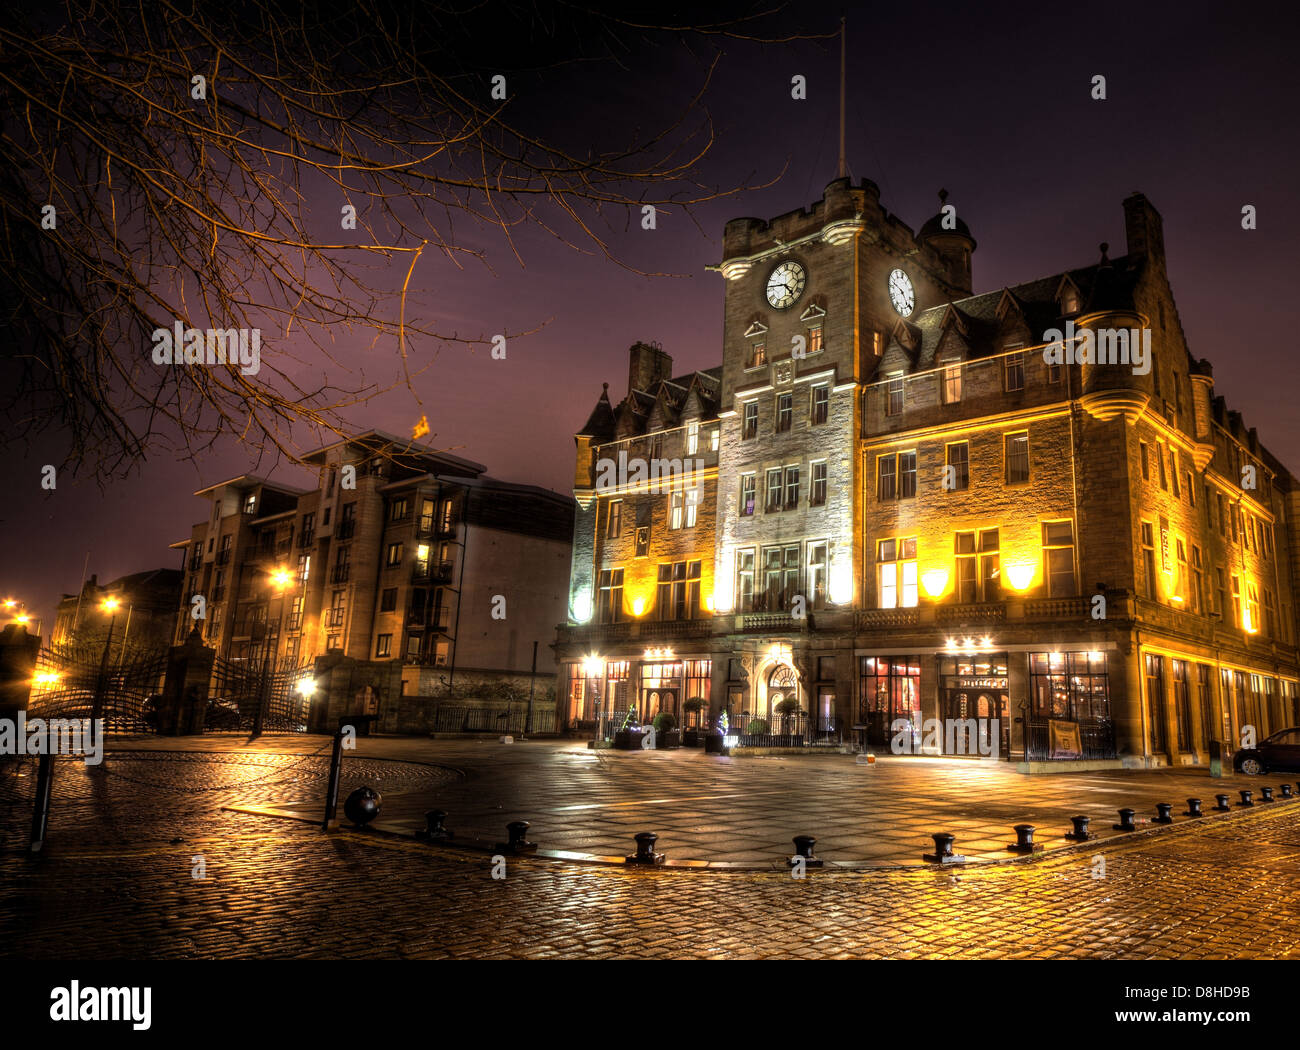 Dusk,B&B,places,to,stay,city,capital,of,Scotland,UK,GB,Great,Britain,The,Shore,Bed,and,Breakfast,boutique,places,place,to,stay,tourist,tourists,travel,travellers,cities,water,front,waterfront,eat,eating,chain,cobbles,reflections,reflection,Buy Pictures of,Buy Images Of,gotonysmith,Malmaisons.,The,former,house,of,ill-repute,now,has,a,reputation,thats,second,to,none,and,its,also,just,a,short,taxi,ride,away,from,Waverley,Station.,Malmaison,Edinburgh,bides,at,Leith,(as,they,say,up,here),just a stones throw from the Royal Yacht Britannia,but offering far more funky luxury. Yes,when you want exciting hotels in Edinburgh,this is the King,not,the,castle.,Our,Edinburgh,hotel,puts,you,close,to,all,of,Edinburghs,cobbled,splendours,incredible,shopping,and,famous,galleries.,Then,its,back,to,Mal,for,Scots,dining,with,a,twist,a,fine,selection,of,single,malts,and,mojitos,in,the,bar,and,then,back,to,the,slinkiest,and,most,spectacular,rooms,in,the,Scots,capital,scottish,independance,independence,home,rule,devolution,parliament,SNP,national,party,@Hotpixuk,Government,2014,Scots,vote,voting